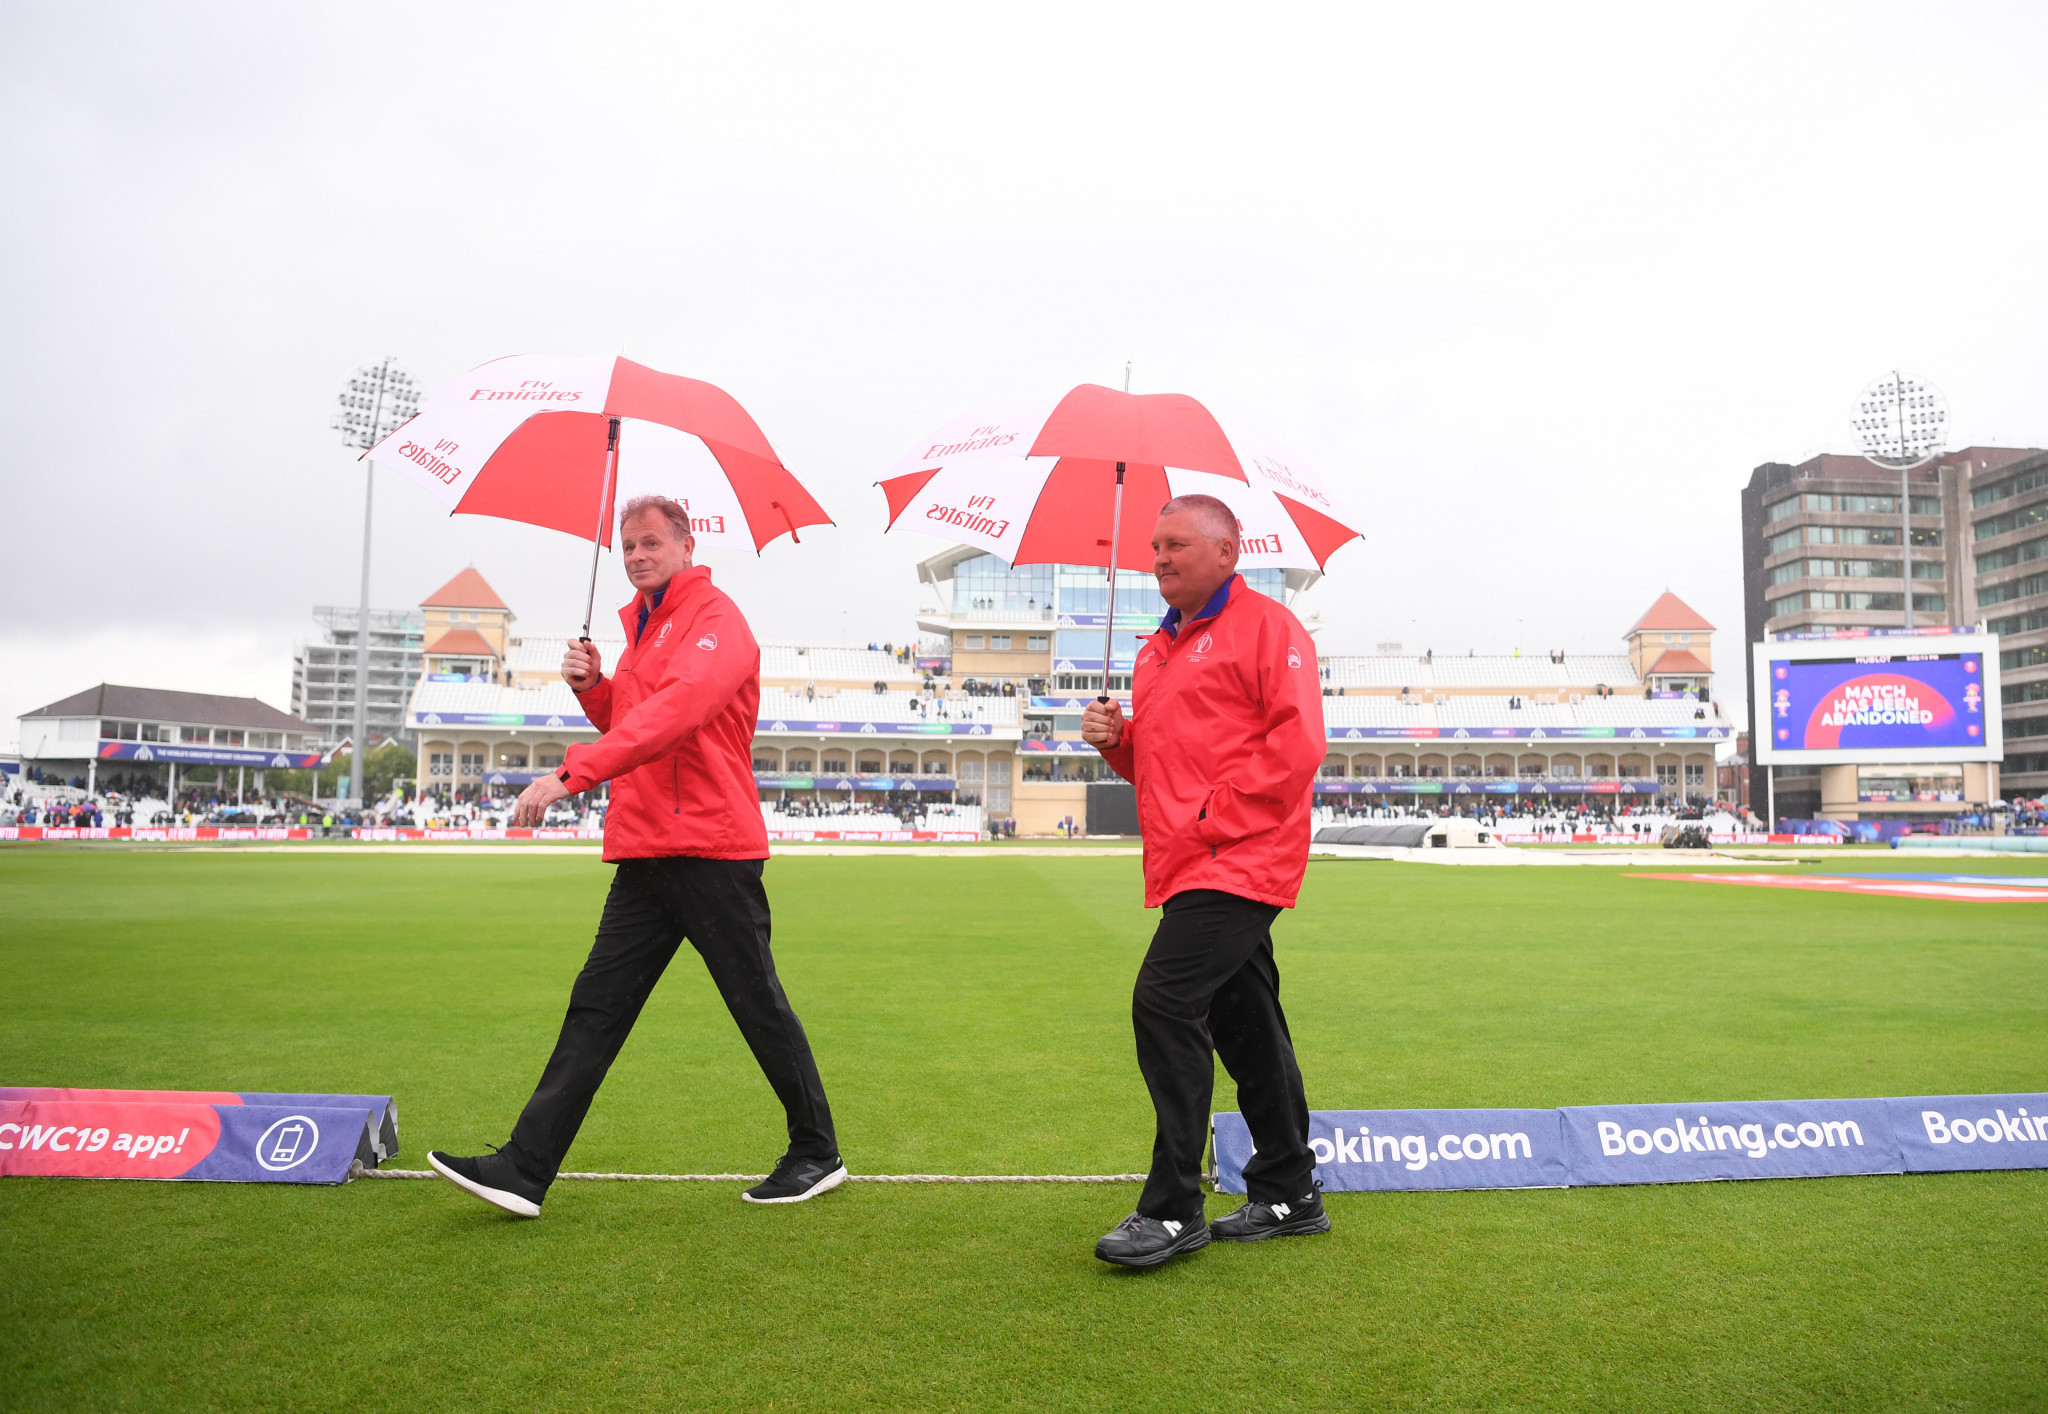 India's clash with New Zealand rained off as ICC Cricket World Cup suffers fourth call-off